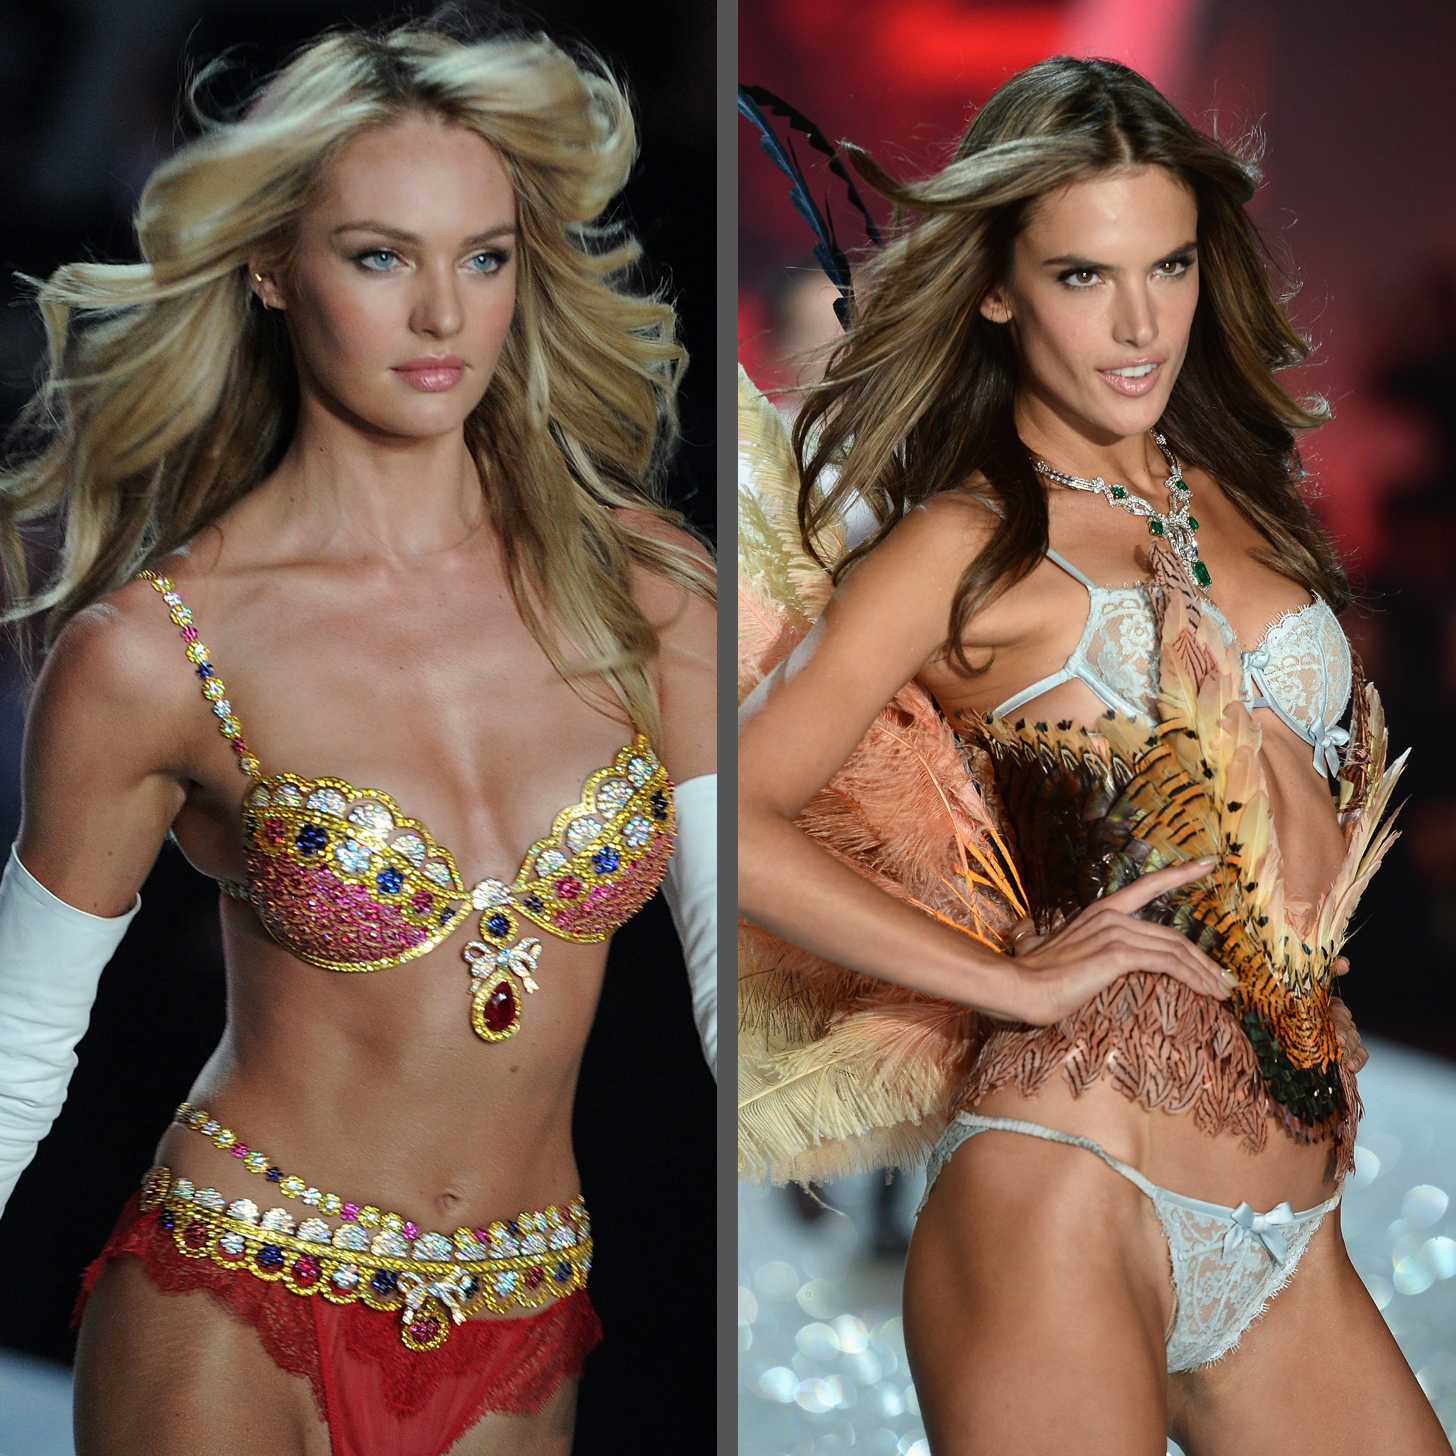 2014 Victoria's Secret Fashion Show Full Share This Link